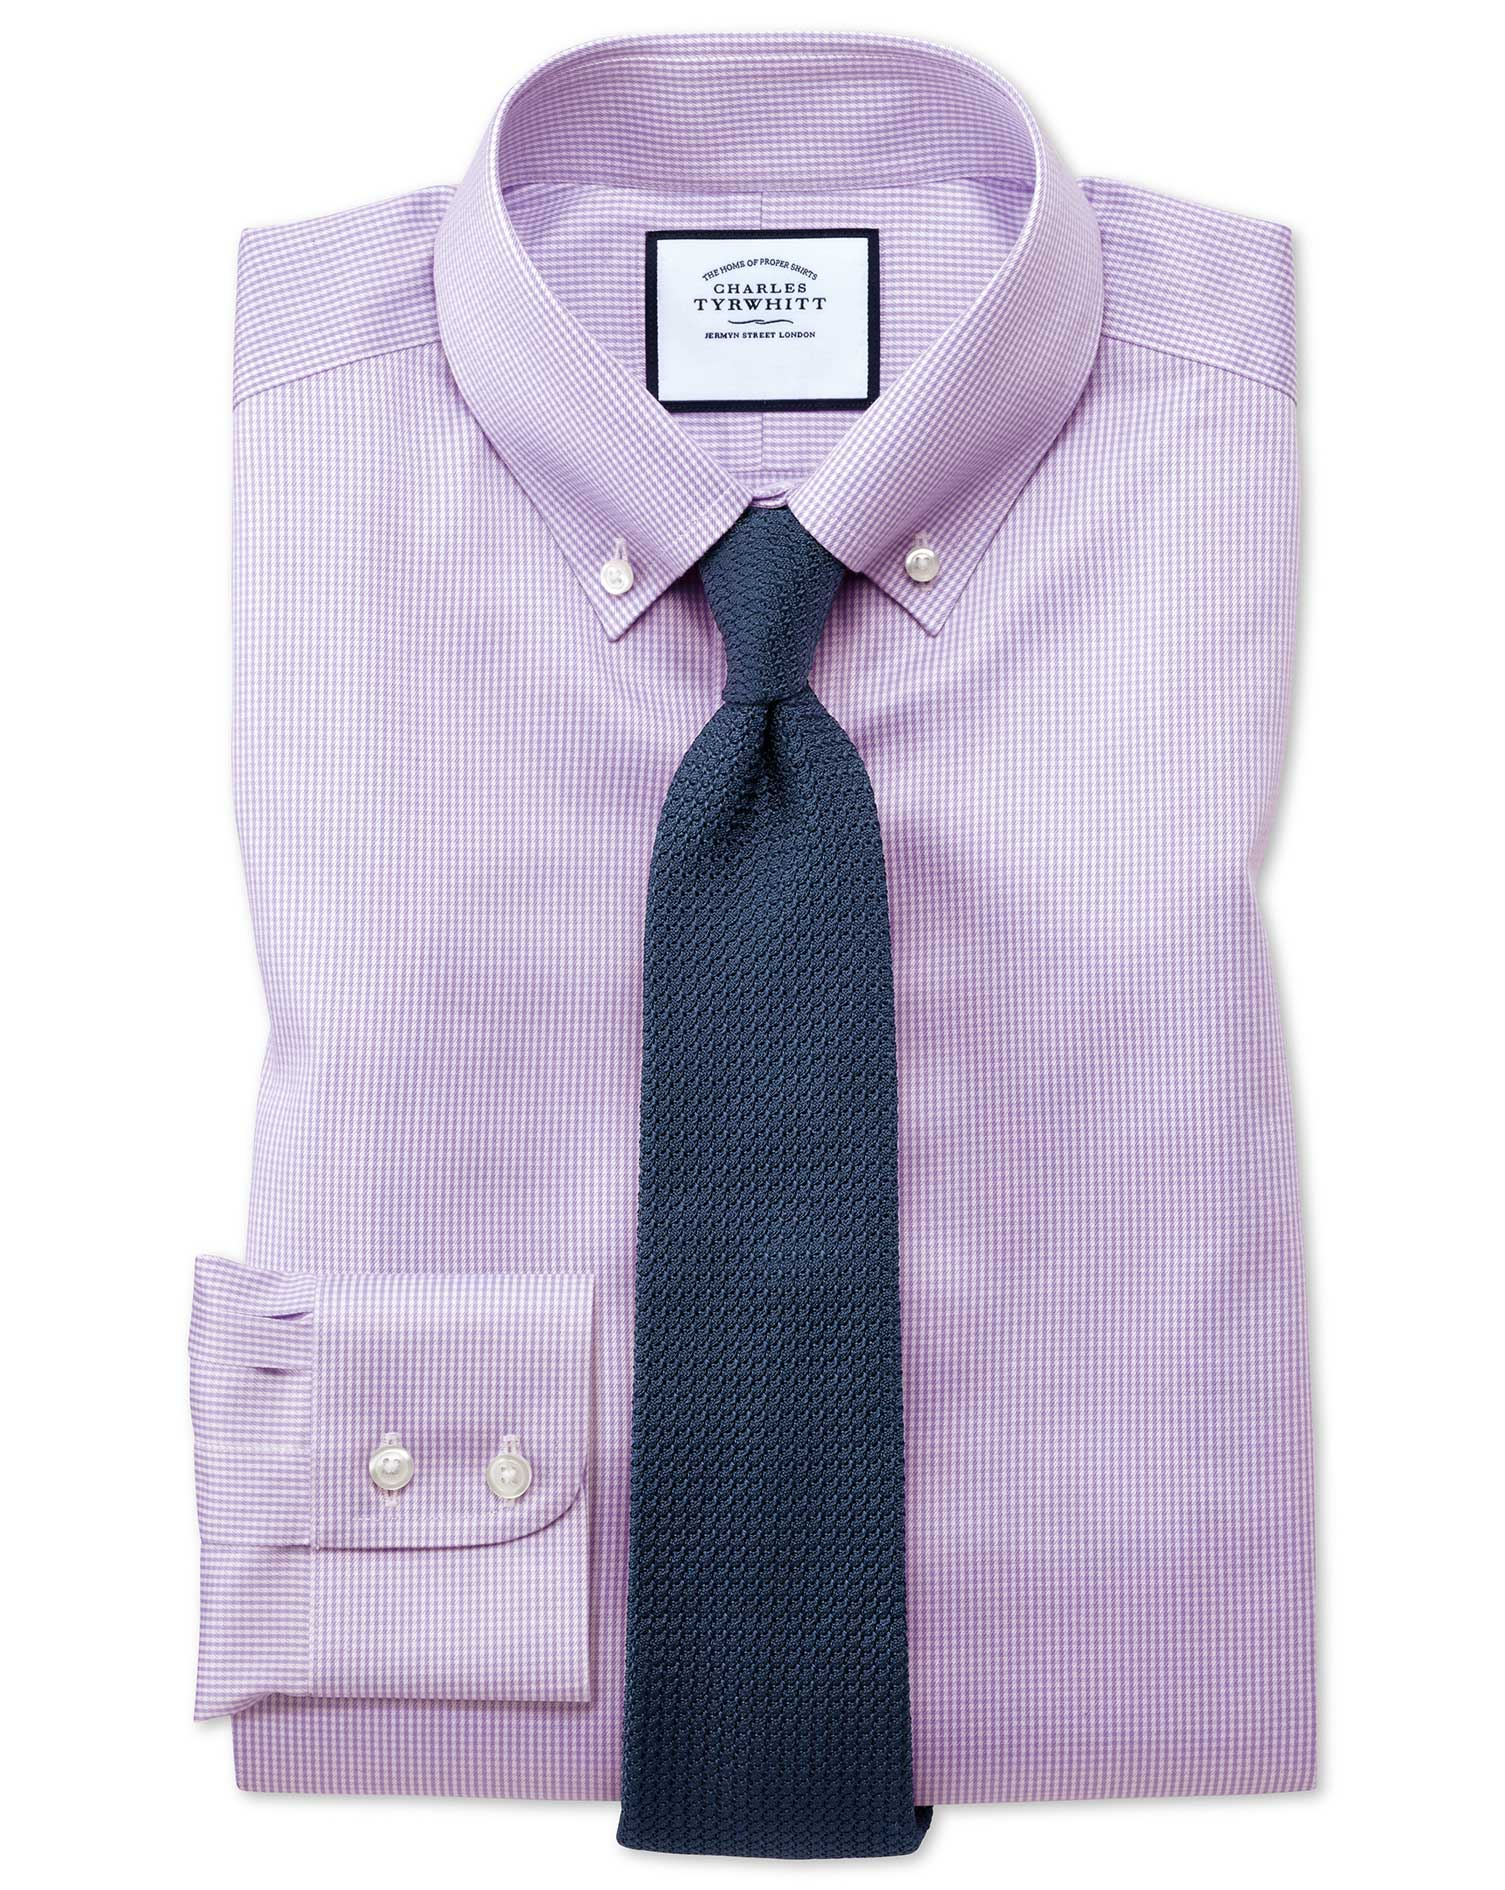 Classic Fit Button-Down Non-Iron Twill Puppytooth Lilac Cotton Formal Shirt Single Cuff Size 15.5/35